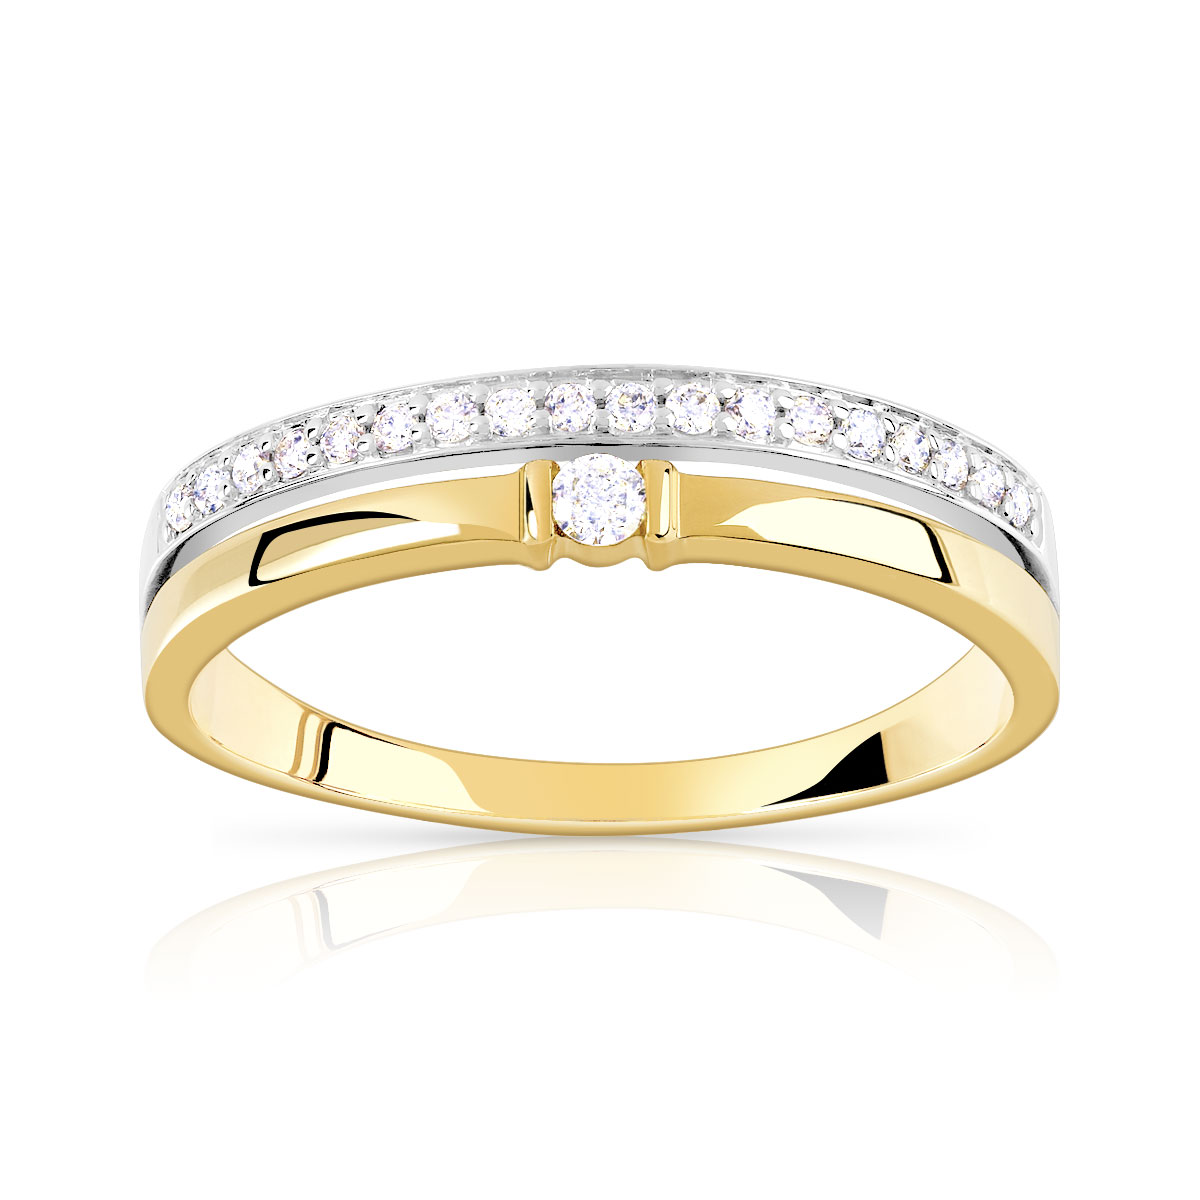 Bague alliance solitaire 2 ors 750 diamant - vue V1